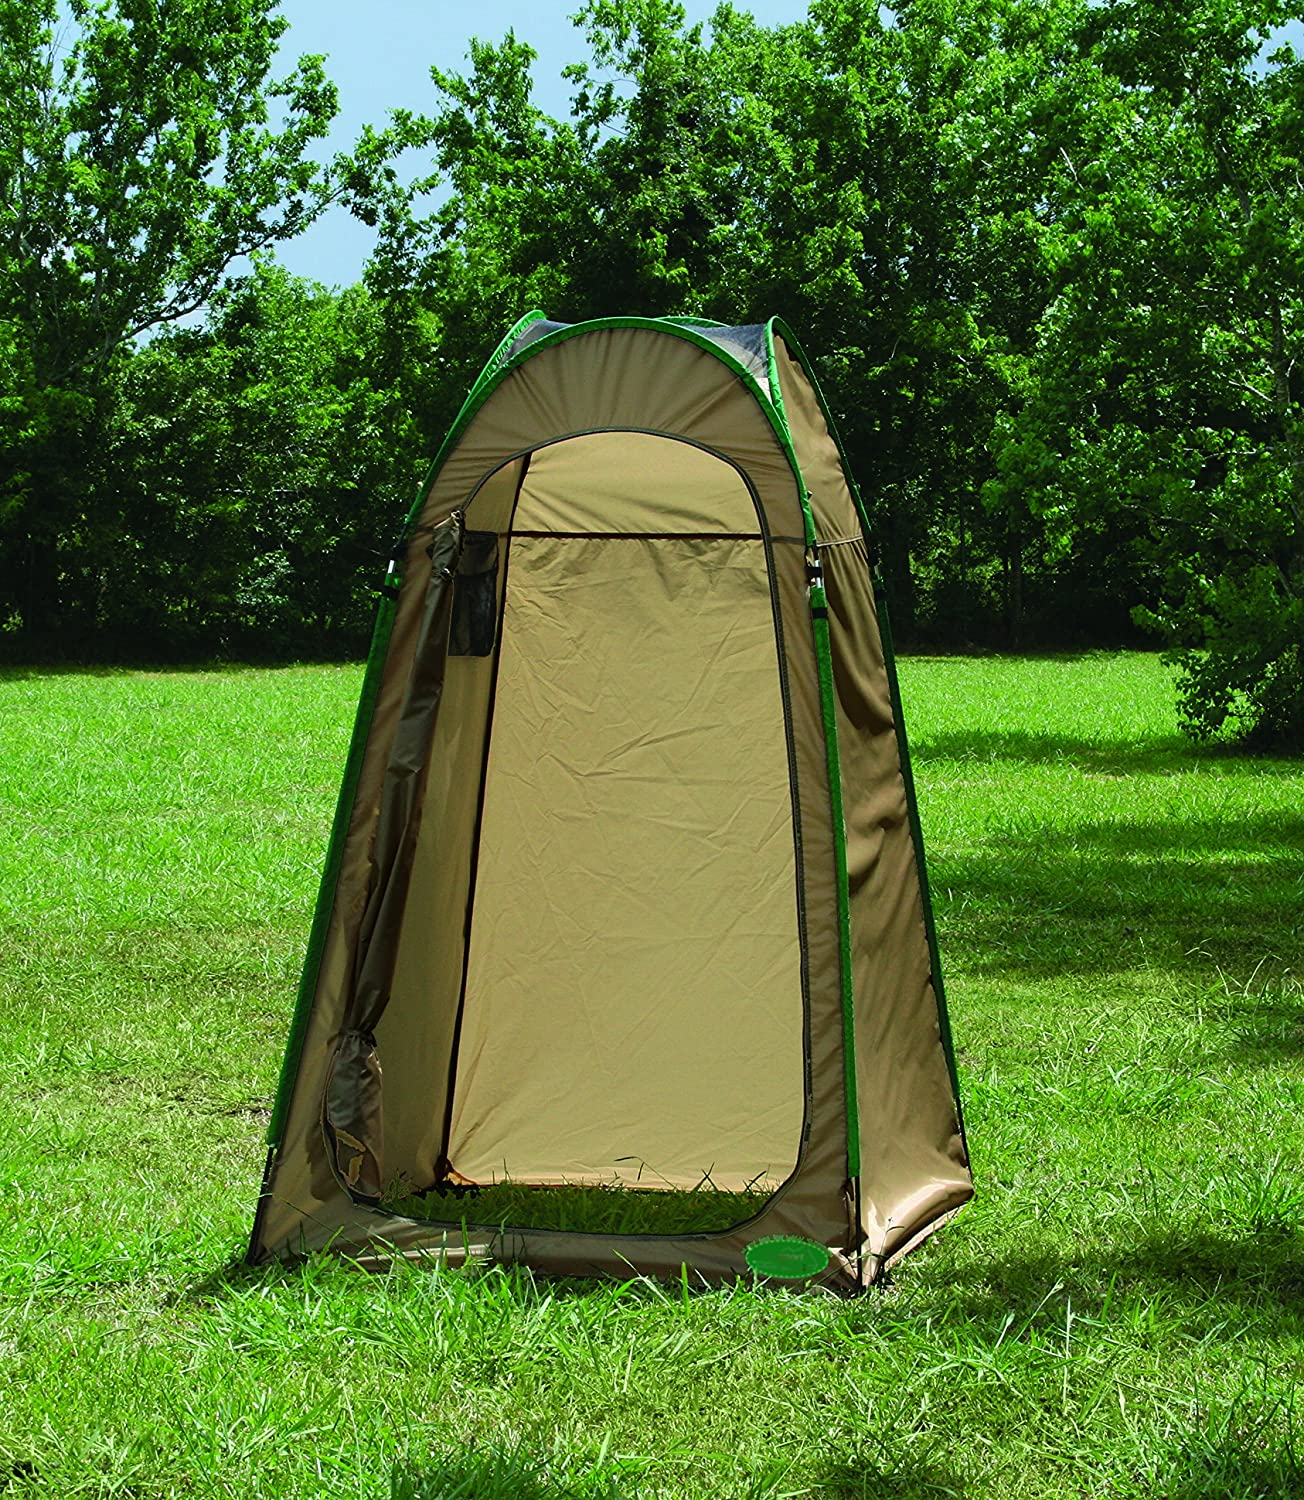 Portable Privacy Shelter For Boats : Tent hut call virgil jones